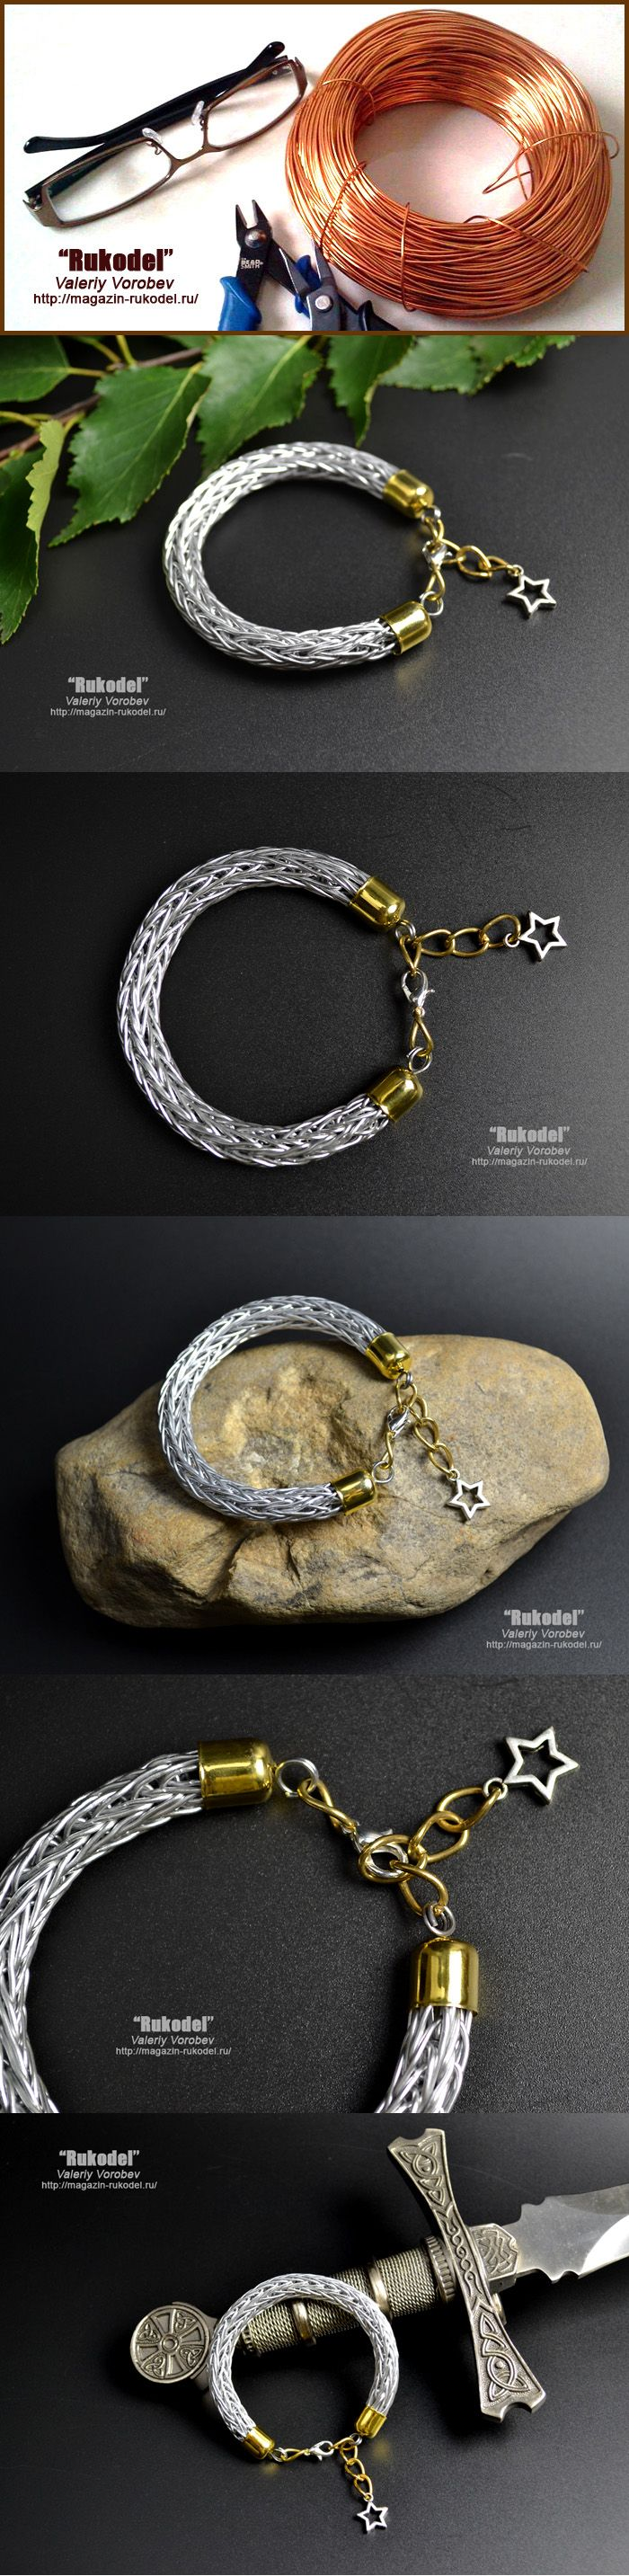 1444 best Wire images on Pinterest | Wire jewelry, Wire wrap ...